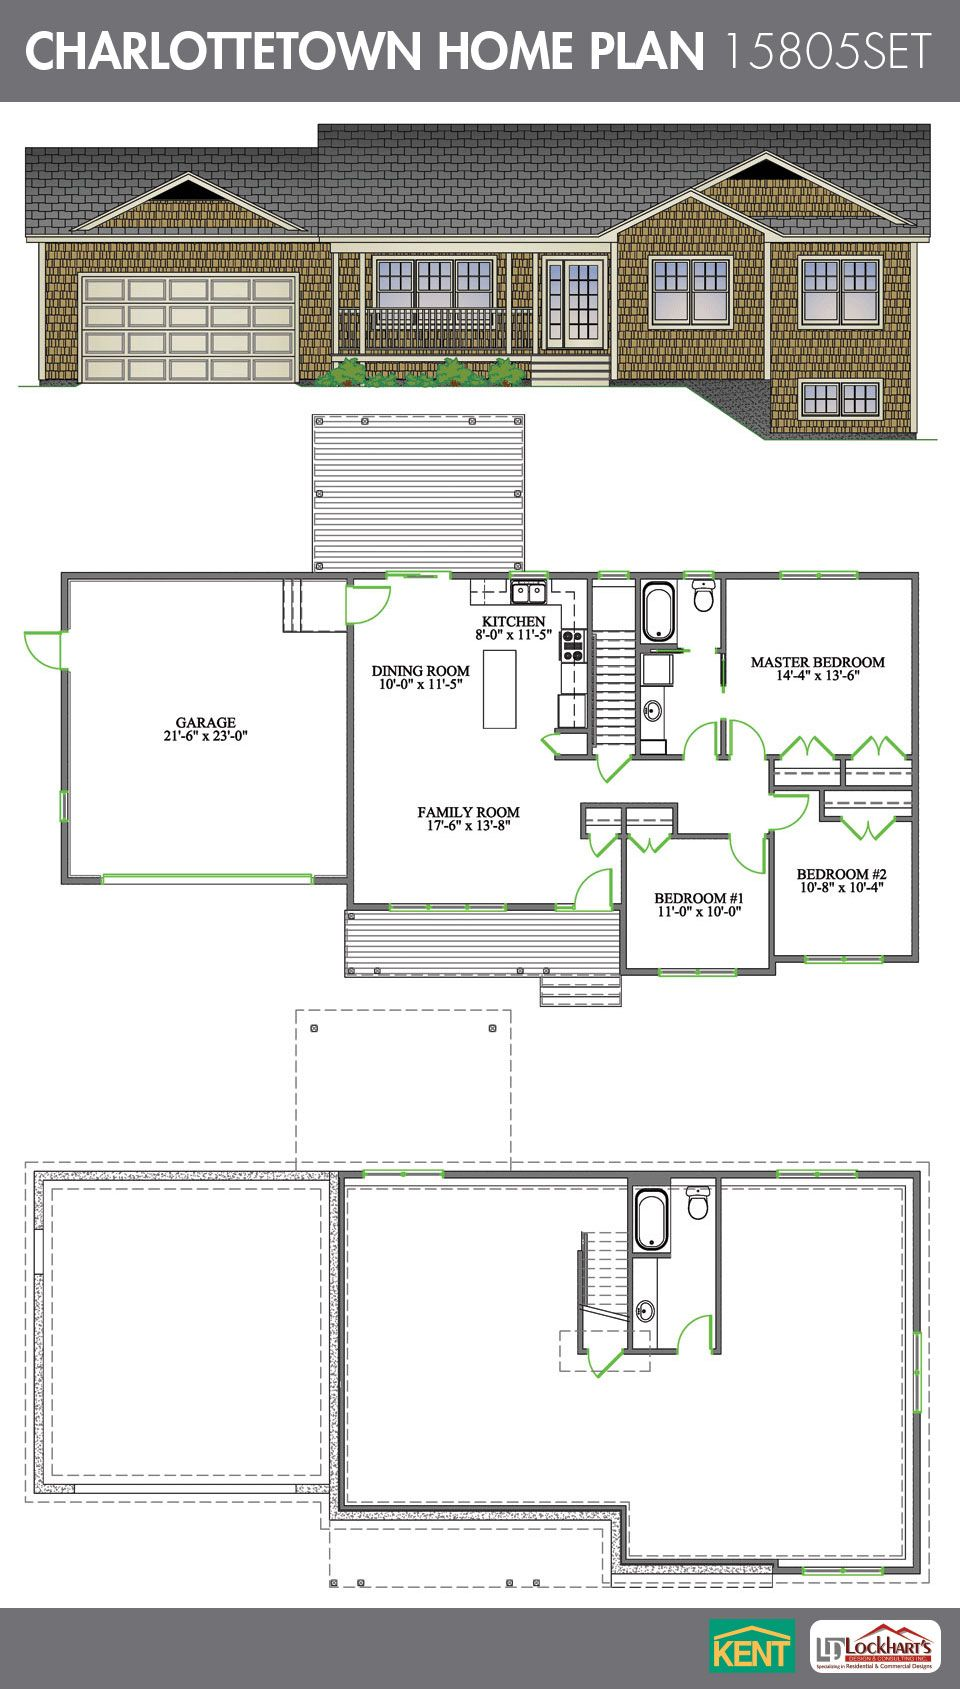 Charlottetown 3 Bedroom 1 Bathroom Home Plan Features Open Concept Living Room Dining Room